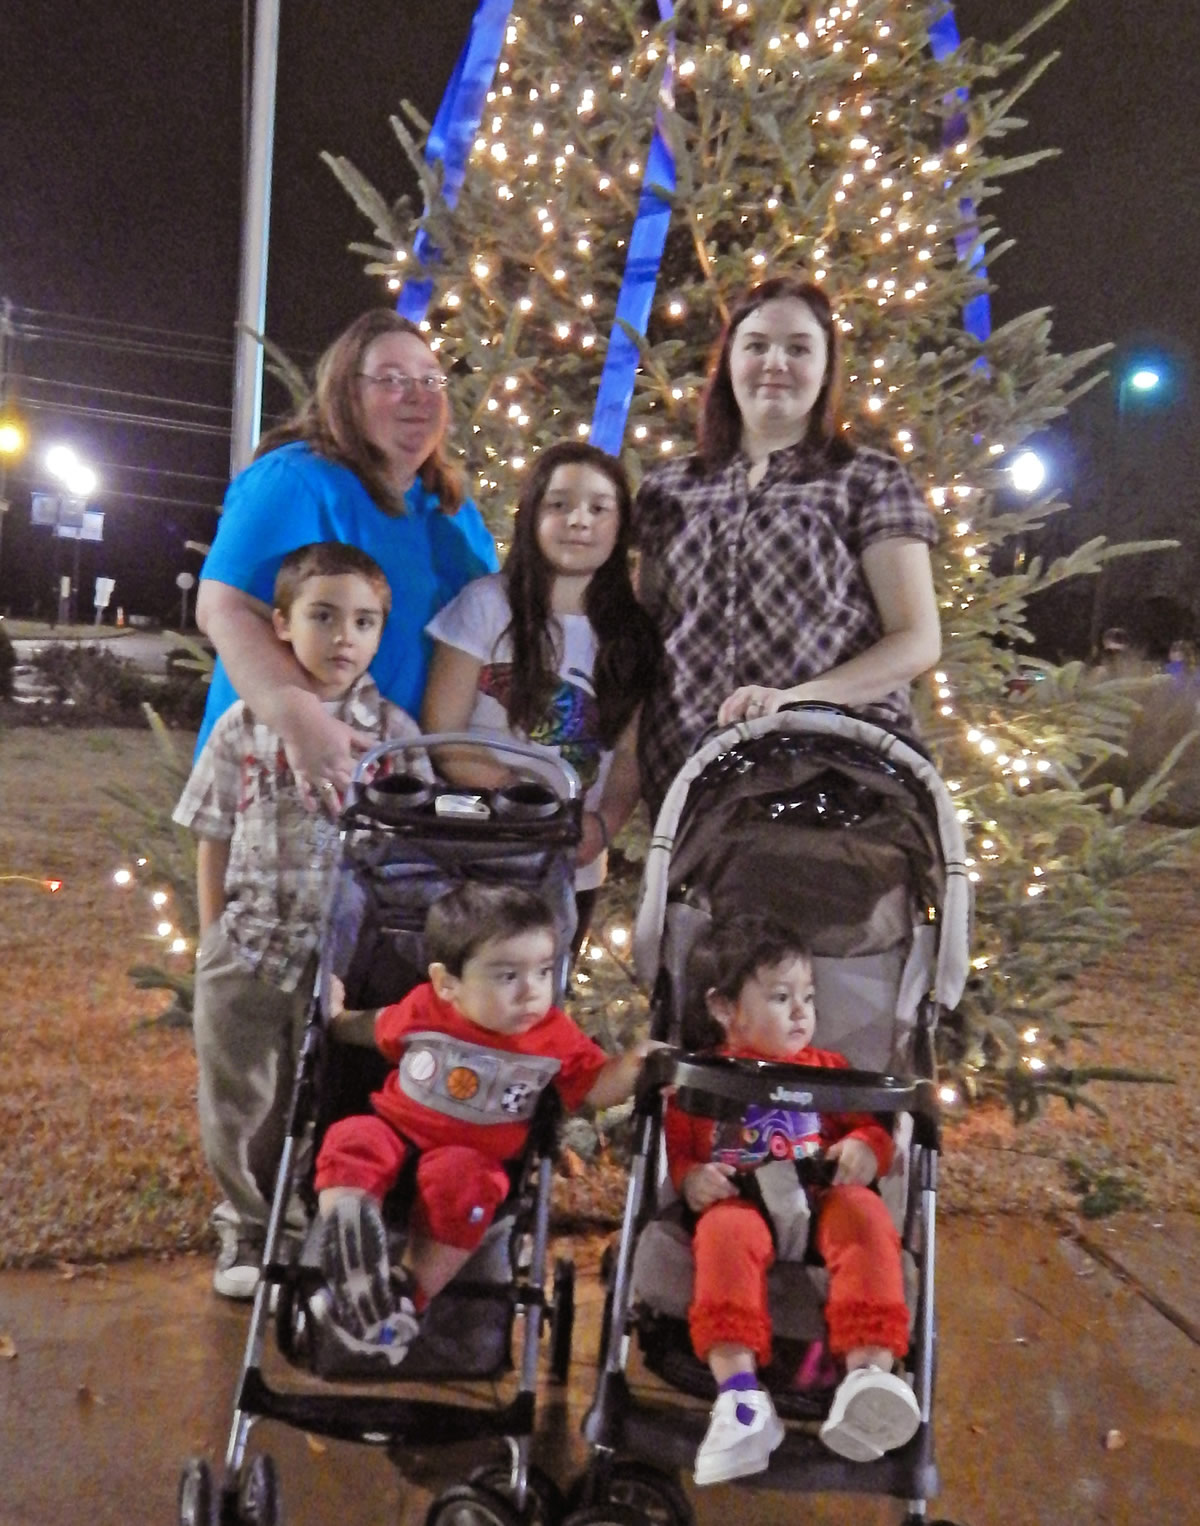 Click to enlarge,  The Borbonio-Flores family, of Sanford, was among those who enjoyed Central Carolina Community College's Dec. 5 Christmas Tree Lighting community celebration. Pictured at the tree are (back from left) Allison Borbonio Flores with son Nicolas Borbonio, daughter Rosa Borbonio, and daughter Paula Juarez, and (in strollers, from left) son Javier Borbonio and granddaughter Lilyana Juarez. Allison attended and Paula graduated from CCCC. During the event at the college's Lee County Campus, visitors enjoyed music by the Southern Lee High School Marching Band, having their picture taken with Santa Claus, watching the tree lighting, listening to a reading of ''Twas the Night Before Christmas,' and refreshments. Those who had pictures taken with Santa can view and download them at the college's website, www.cccc.edu/santapics/.